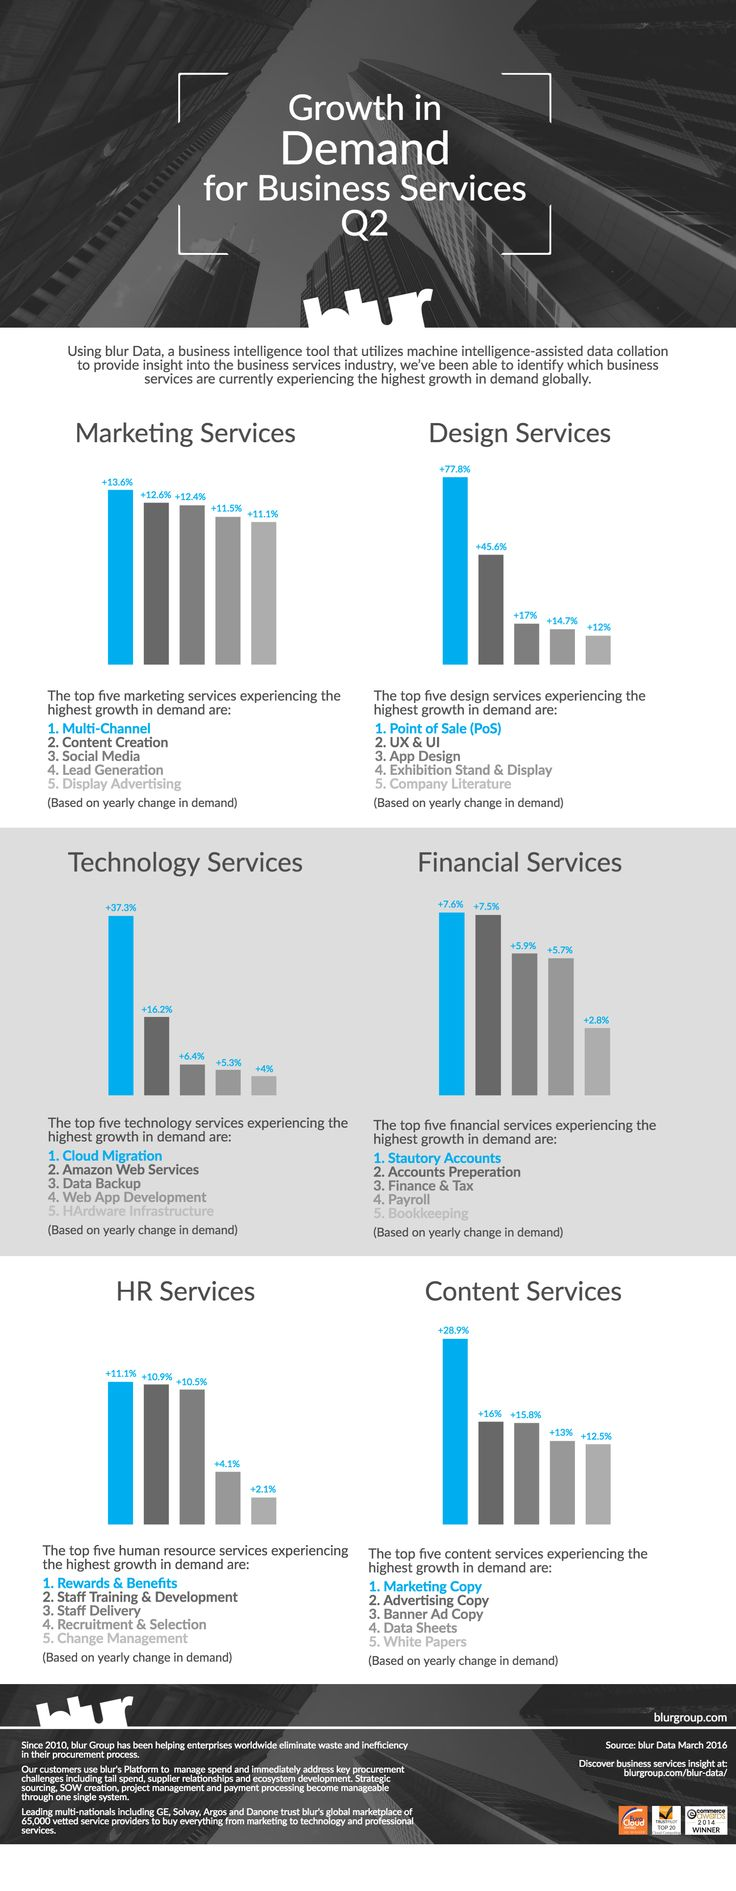 Growth in demand for business services Q2 2016